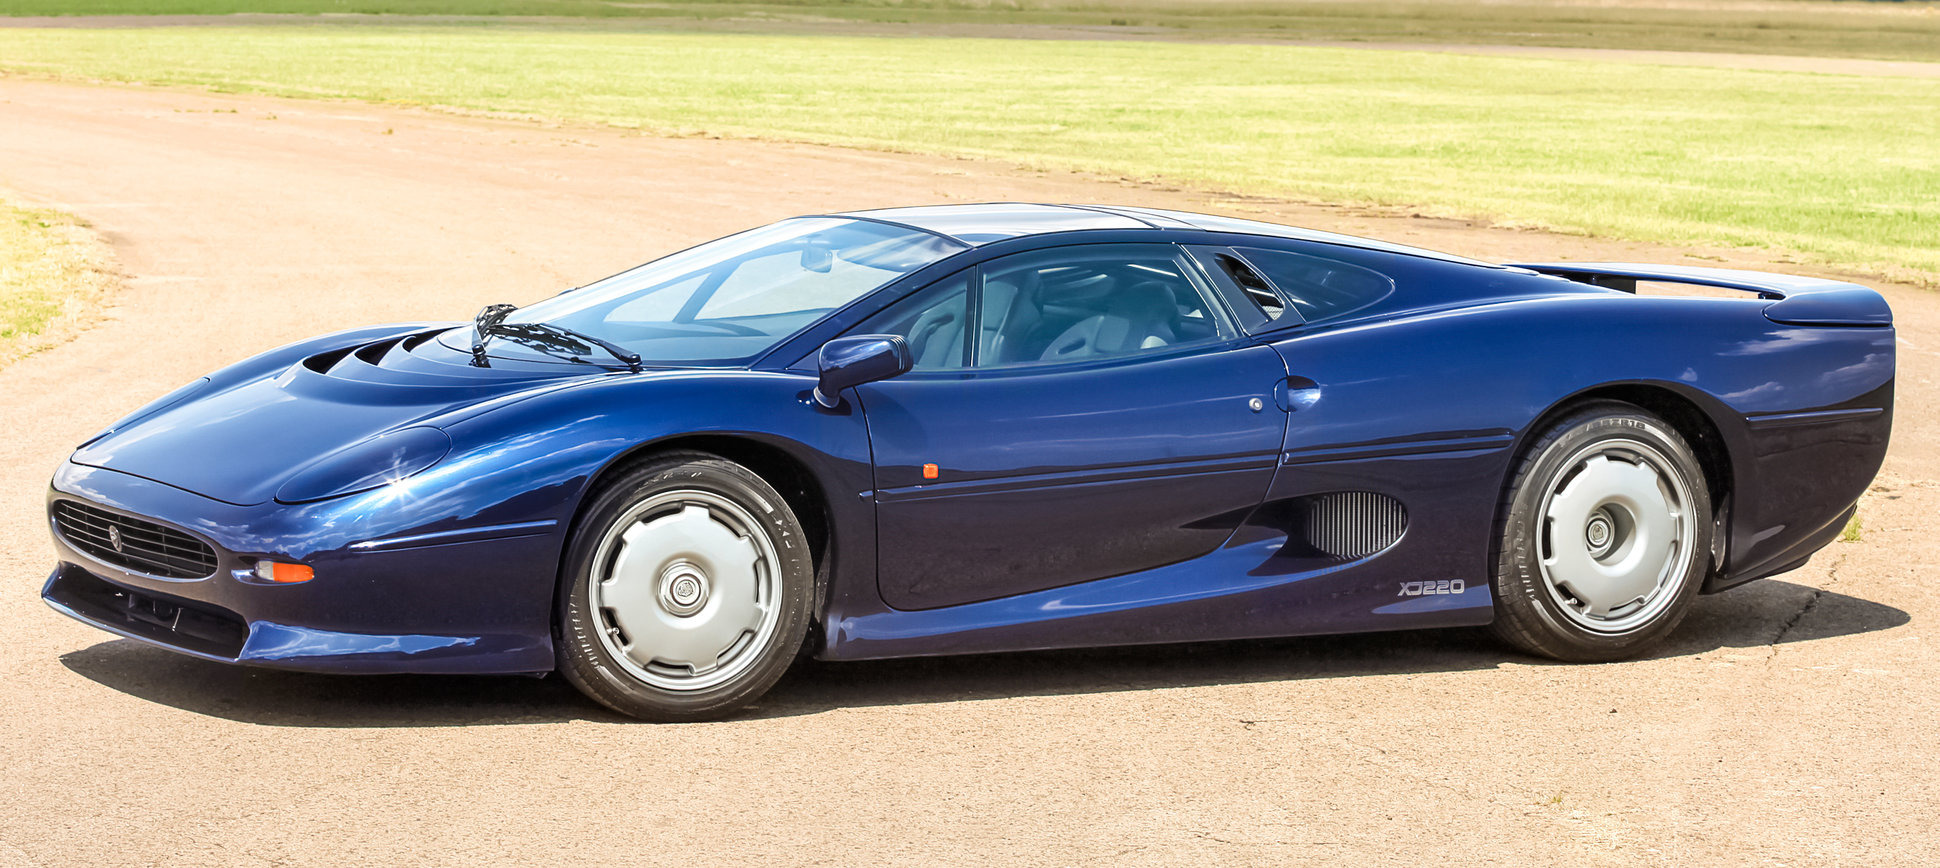 Jaguar >> Jaguar XJ220 Gallery - Supercars.net